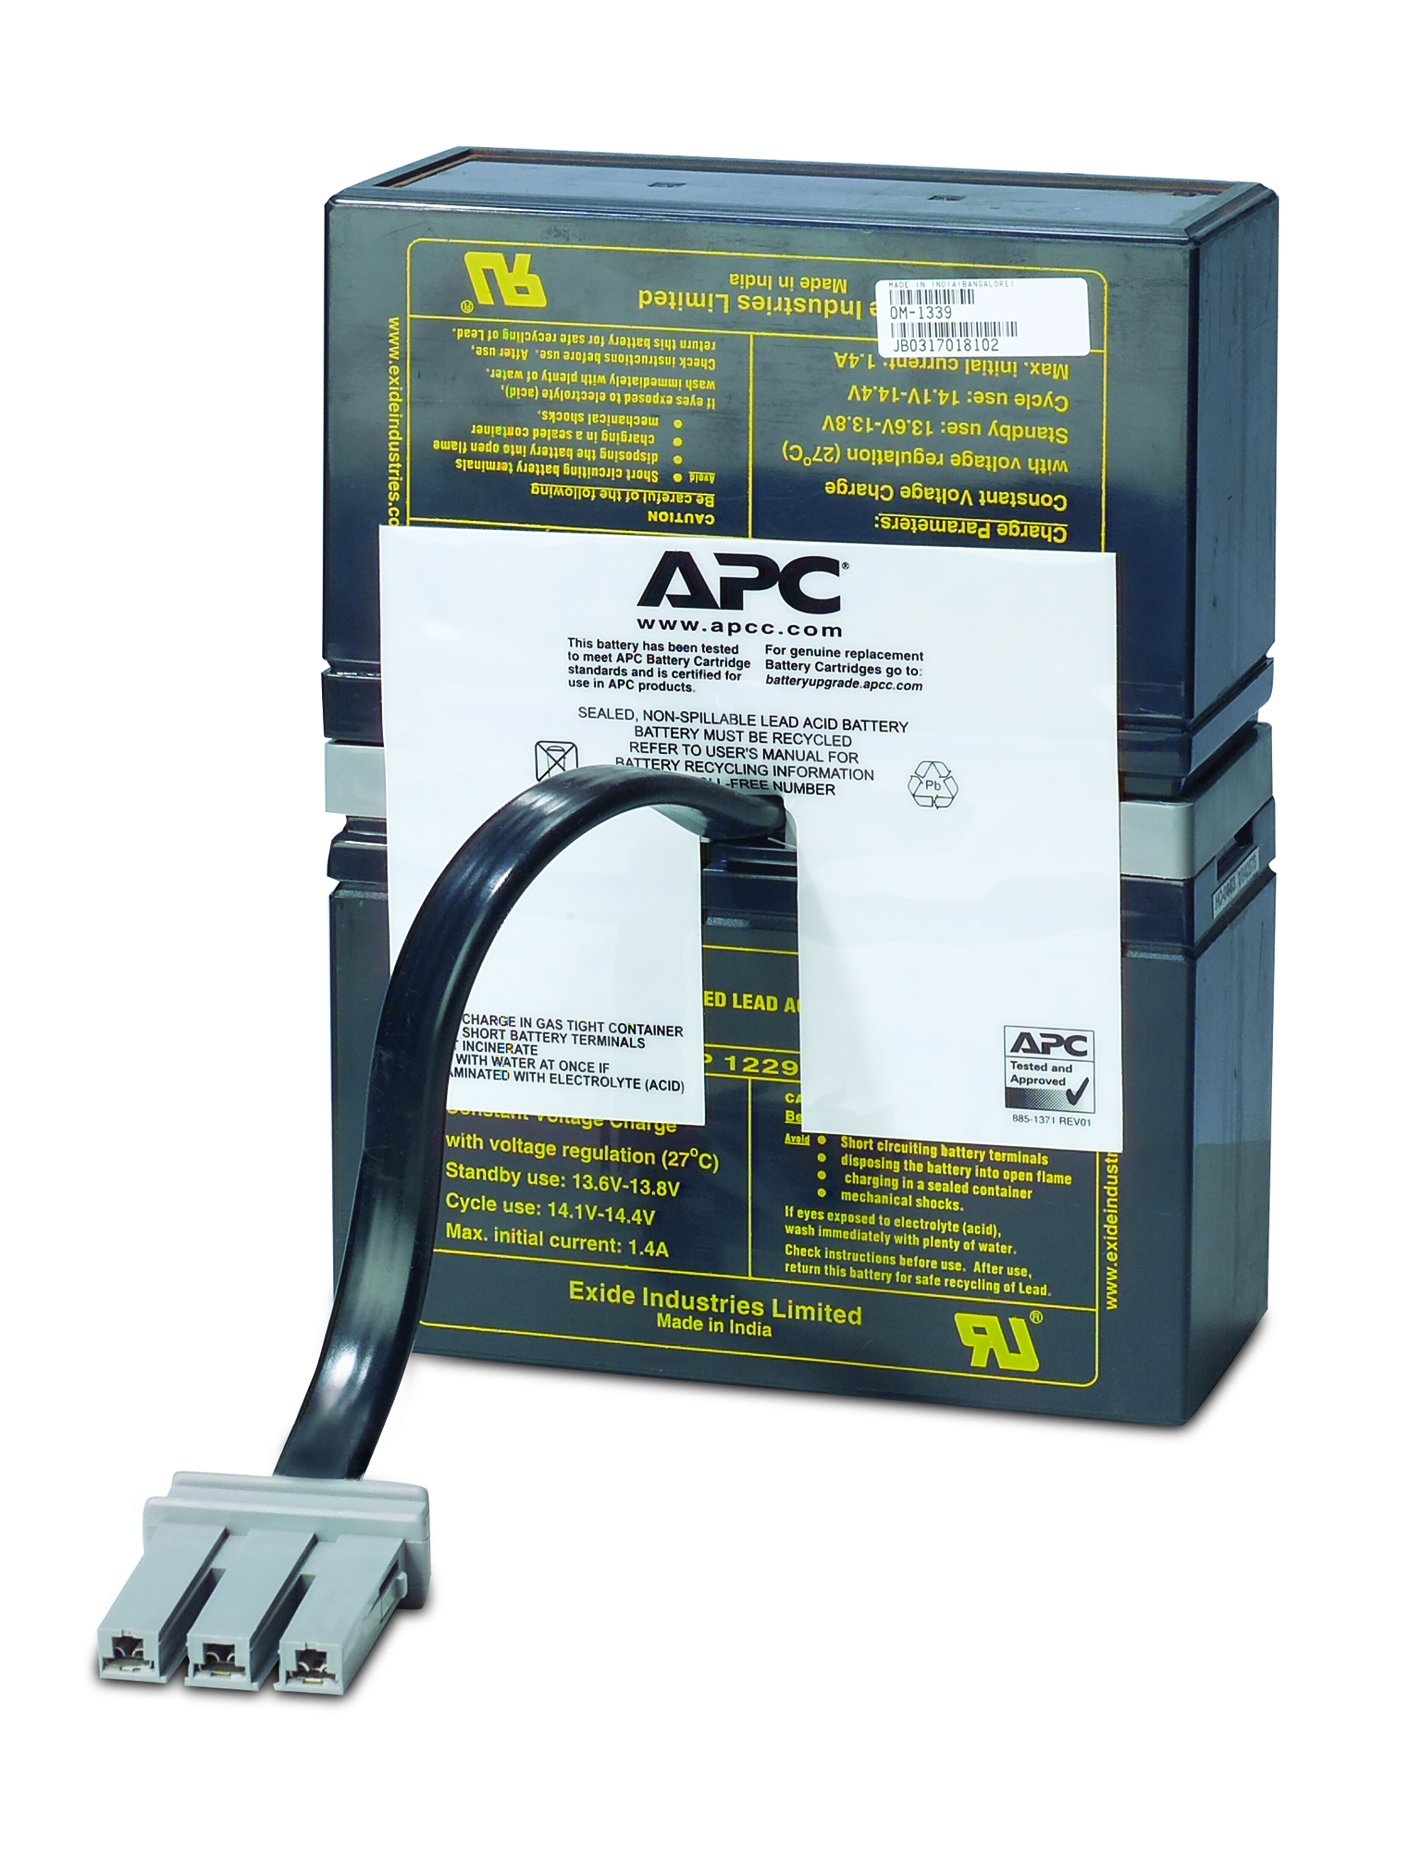 APC UPS Replacement Battery Cartridge for APC UPS Models BR1000, BX1000, BN1050 and select others (RBC32) by APC